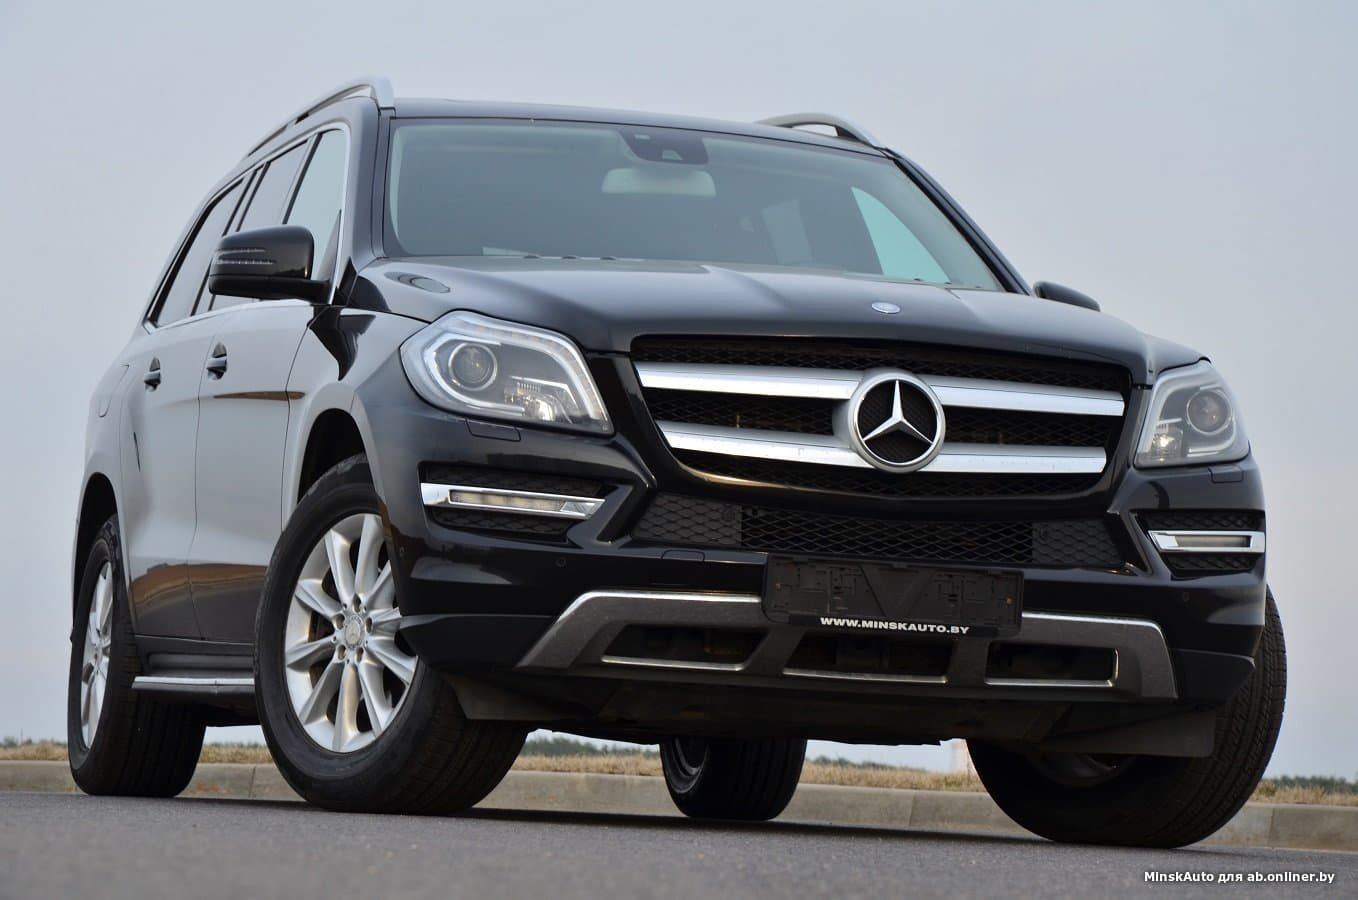 Mercedes-Benz GL350 CDi X166 4Matic